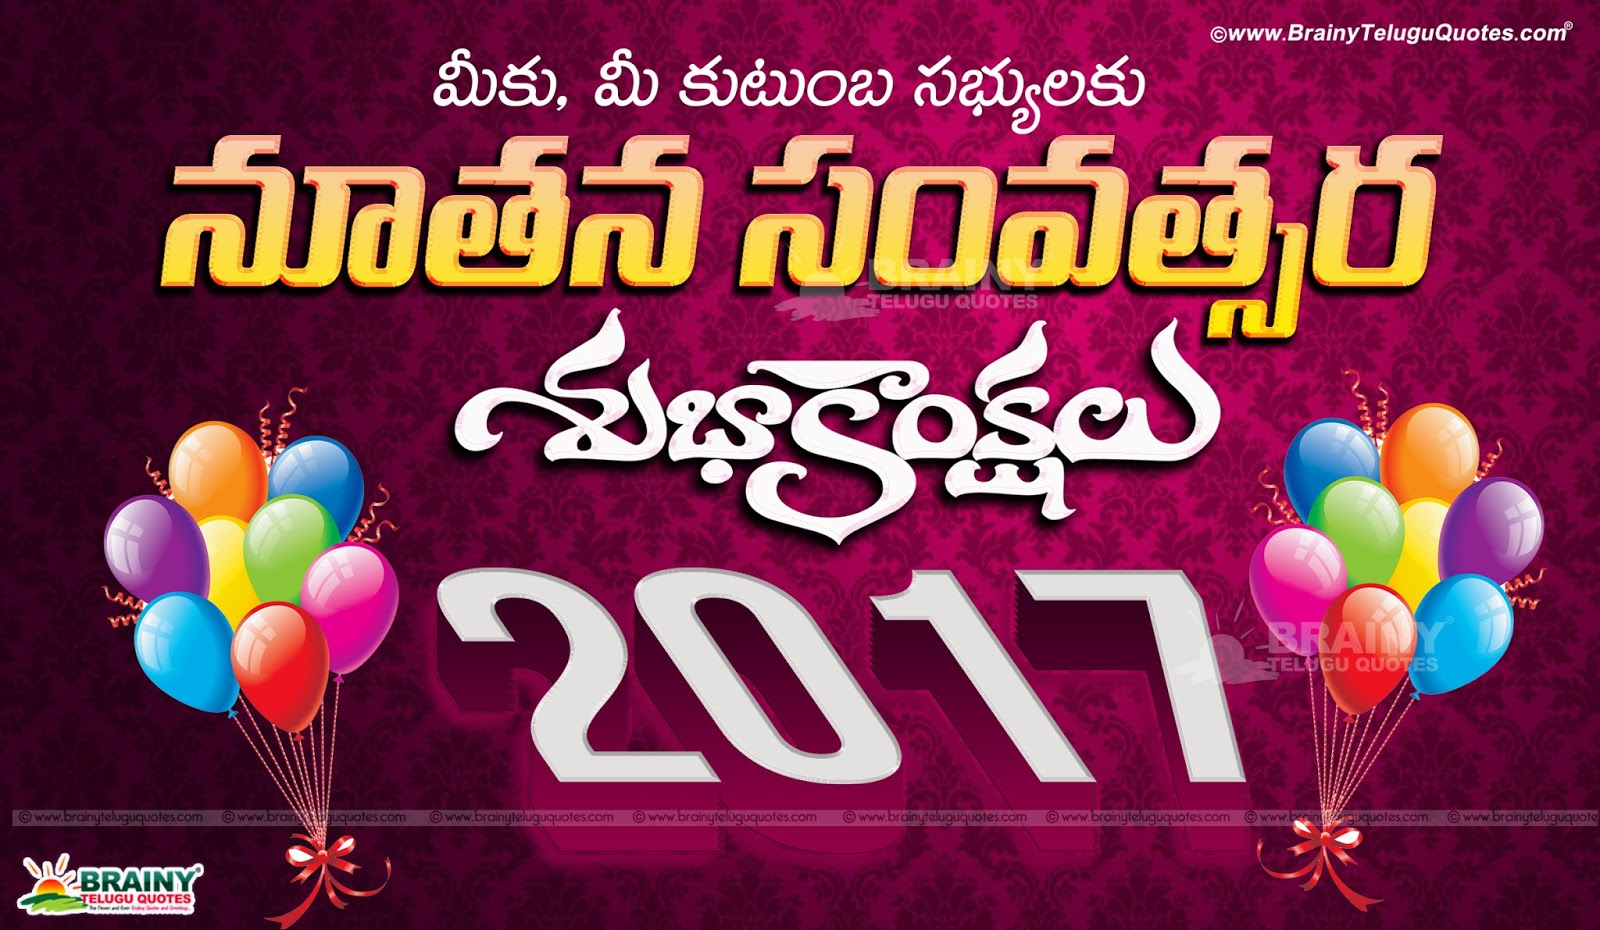 happy new year quotes greetings in telugu 2017 new year greeting wallpapers in telugu telugu new year quotes best telugu new year greetings